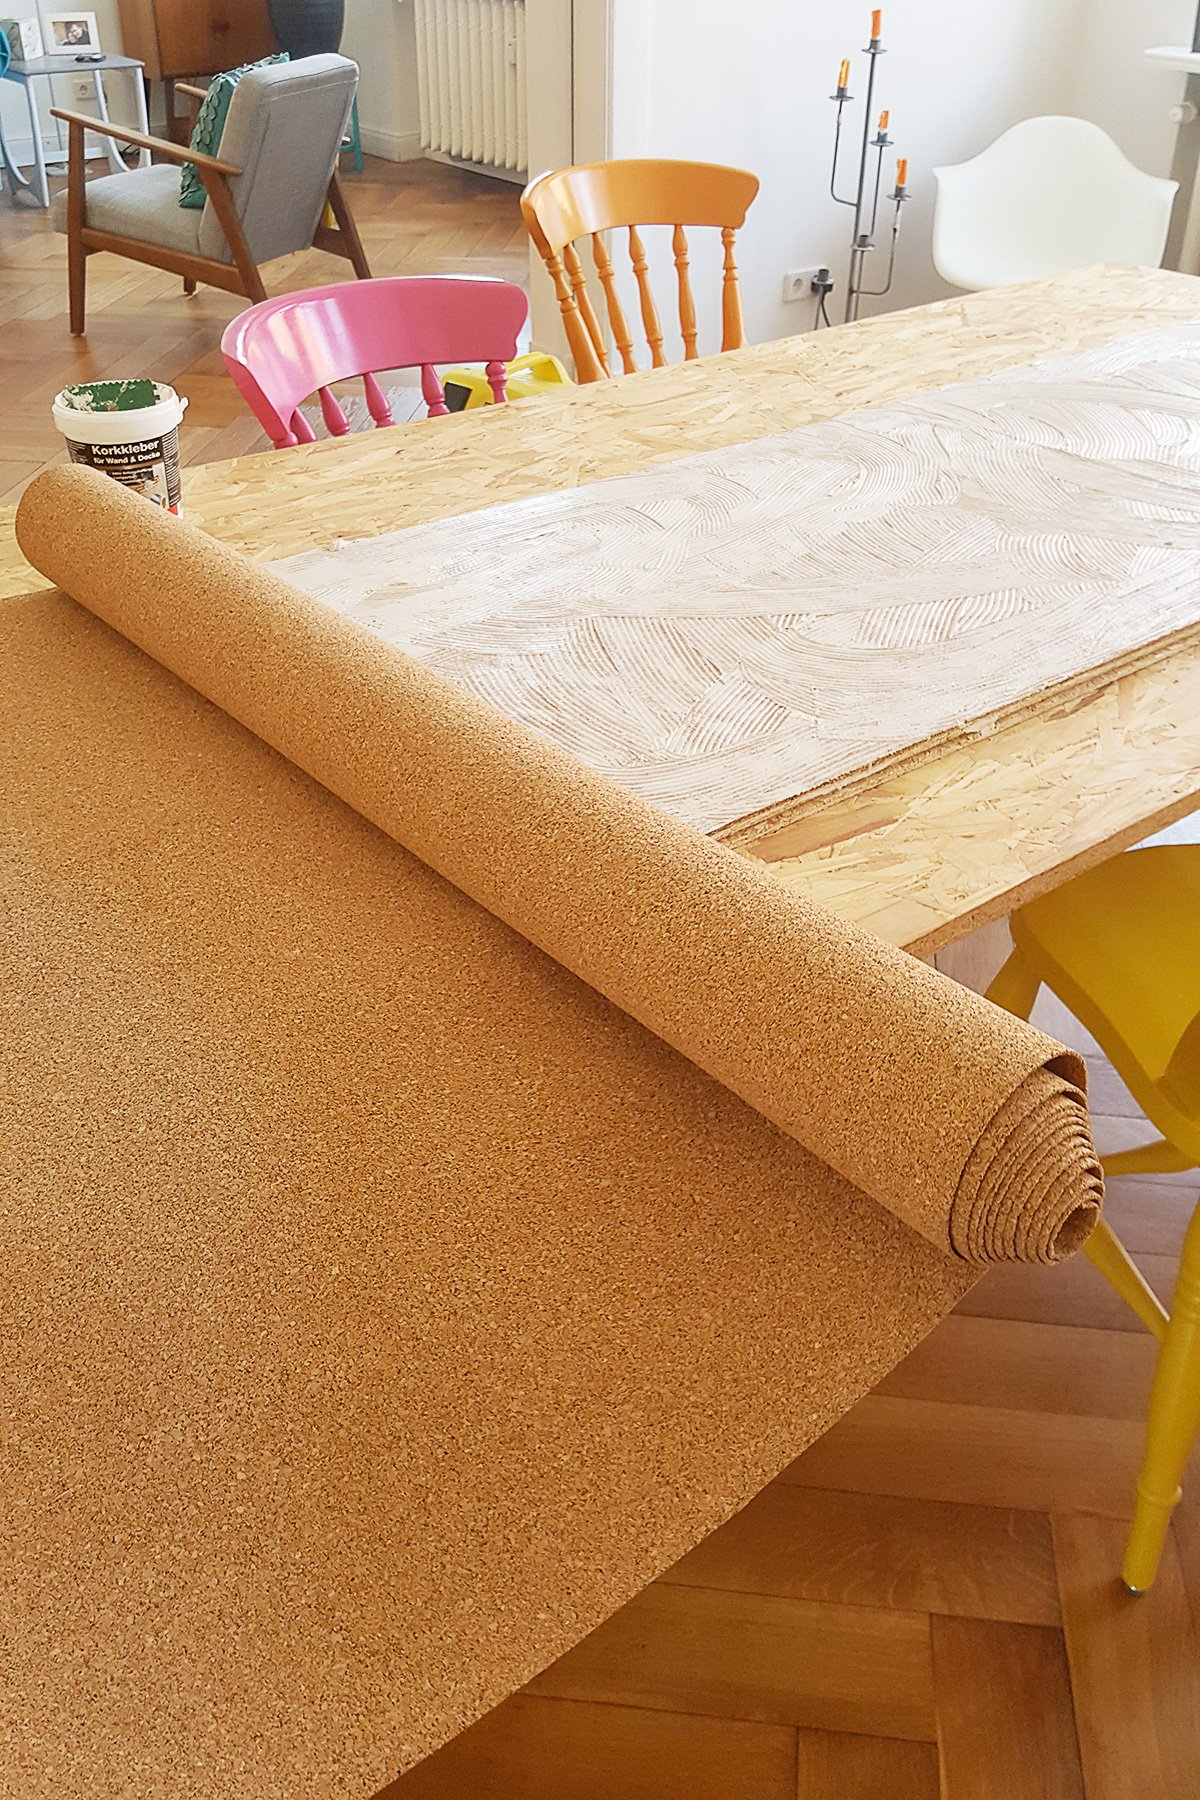 DIY Corkboard Wall | Little House On The Corner